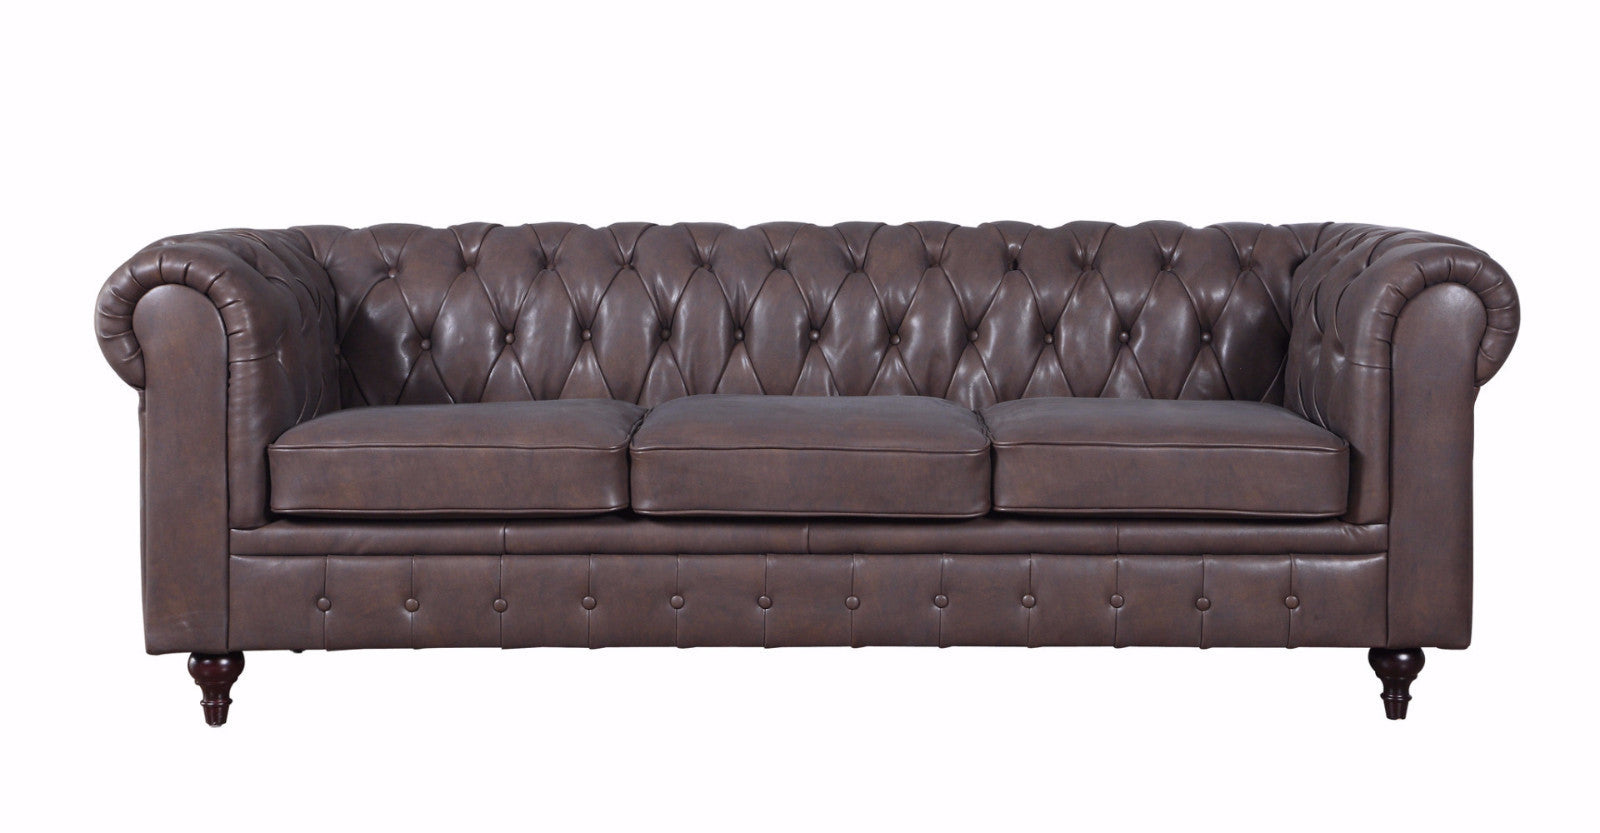 Charleston Classic Leather Chesterfield Sofa